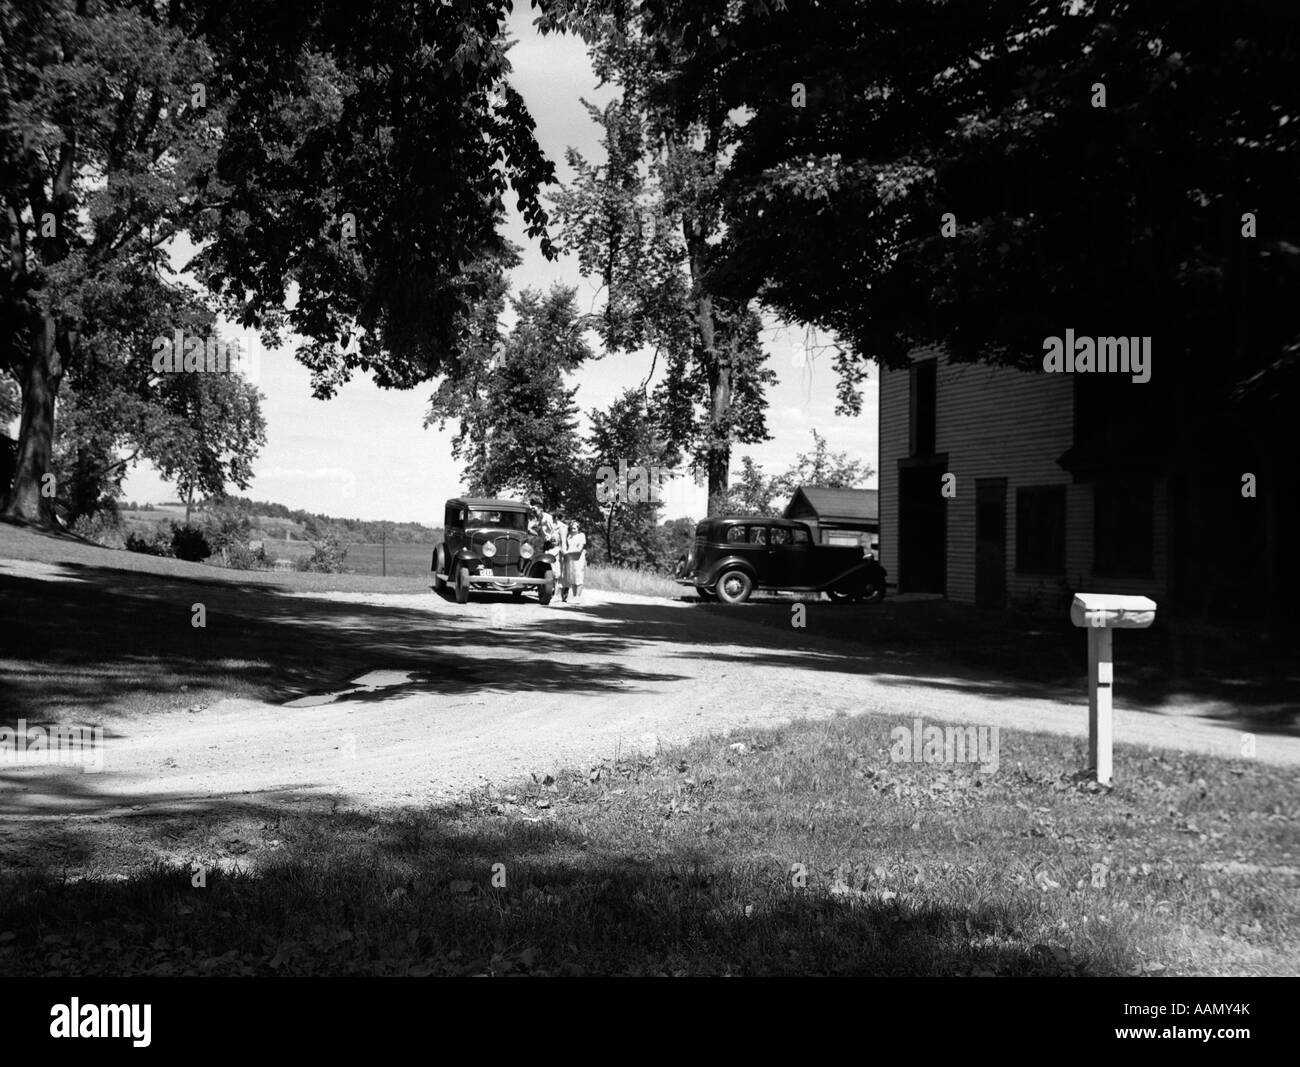 1930s TWO CARS PARKED COUNTRY HOUSE RURAL MAIL BOX RIGHT QUIET TOWN OF VEAZIE NEAR BANGOR MAINE - Stock Image